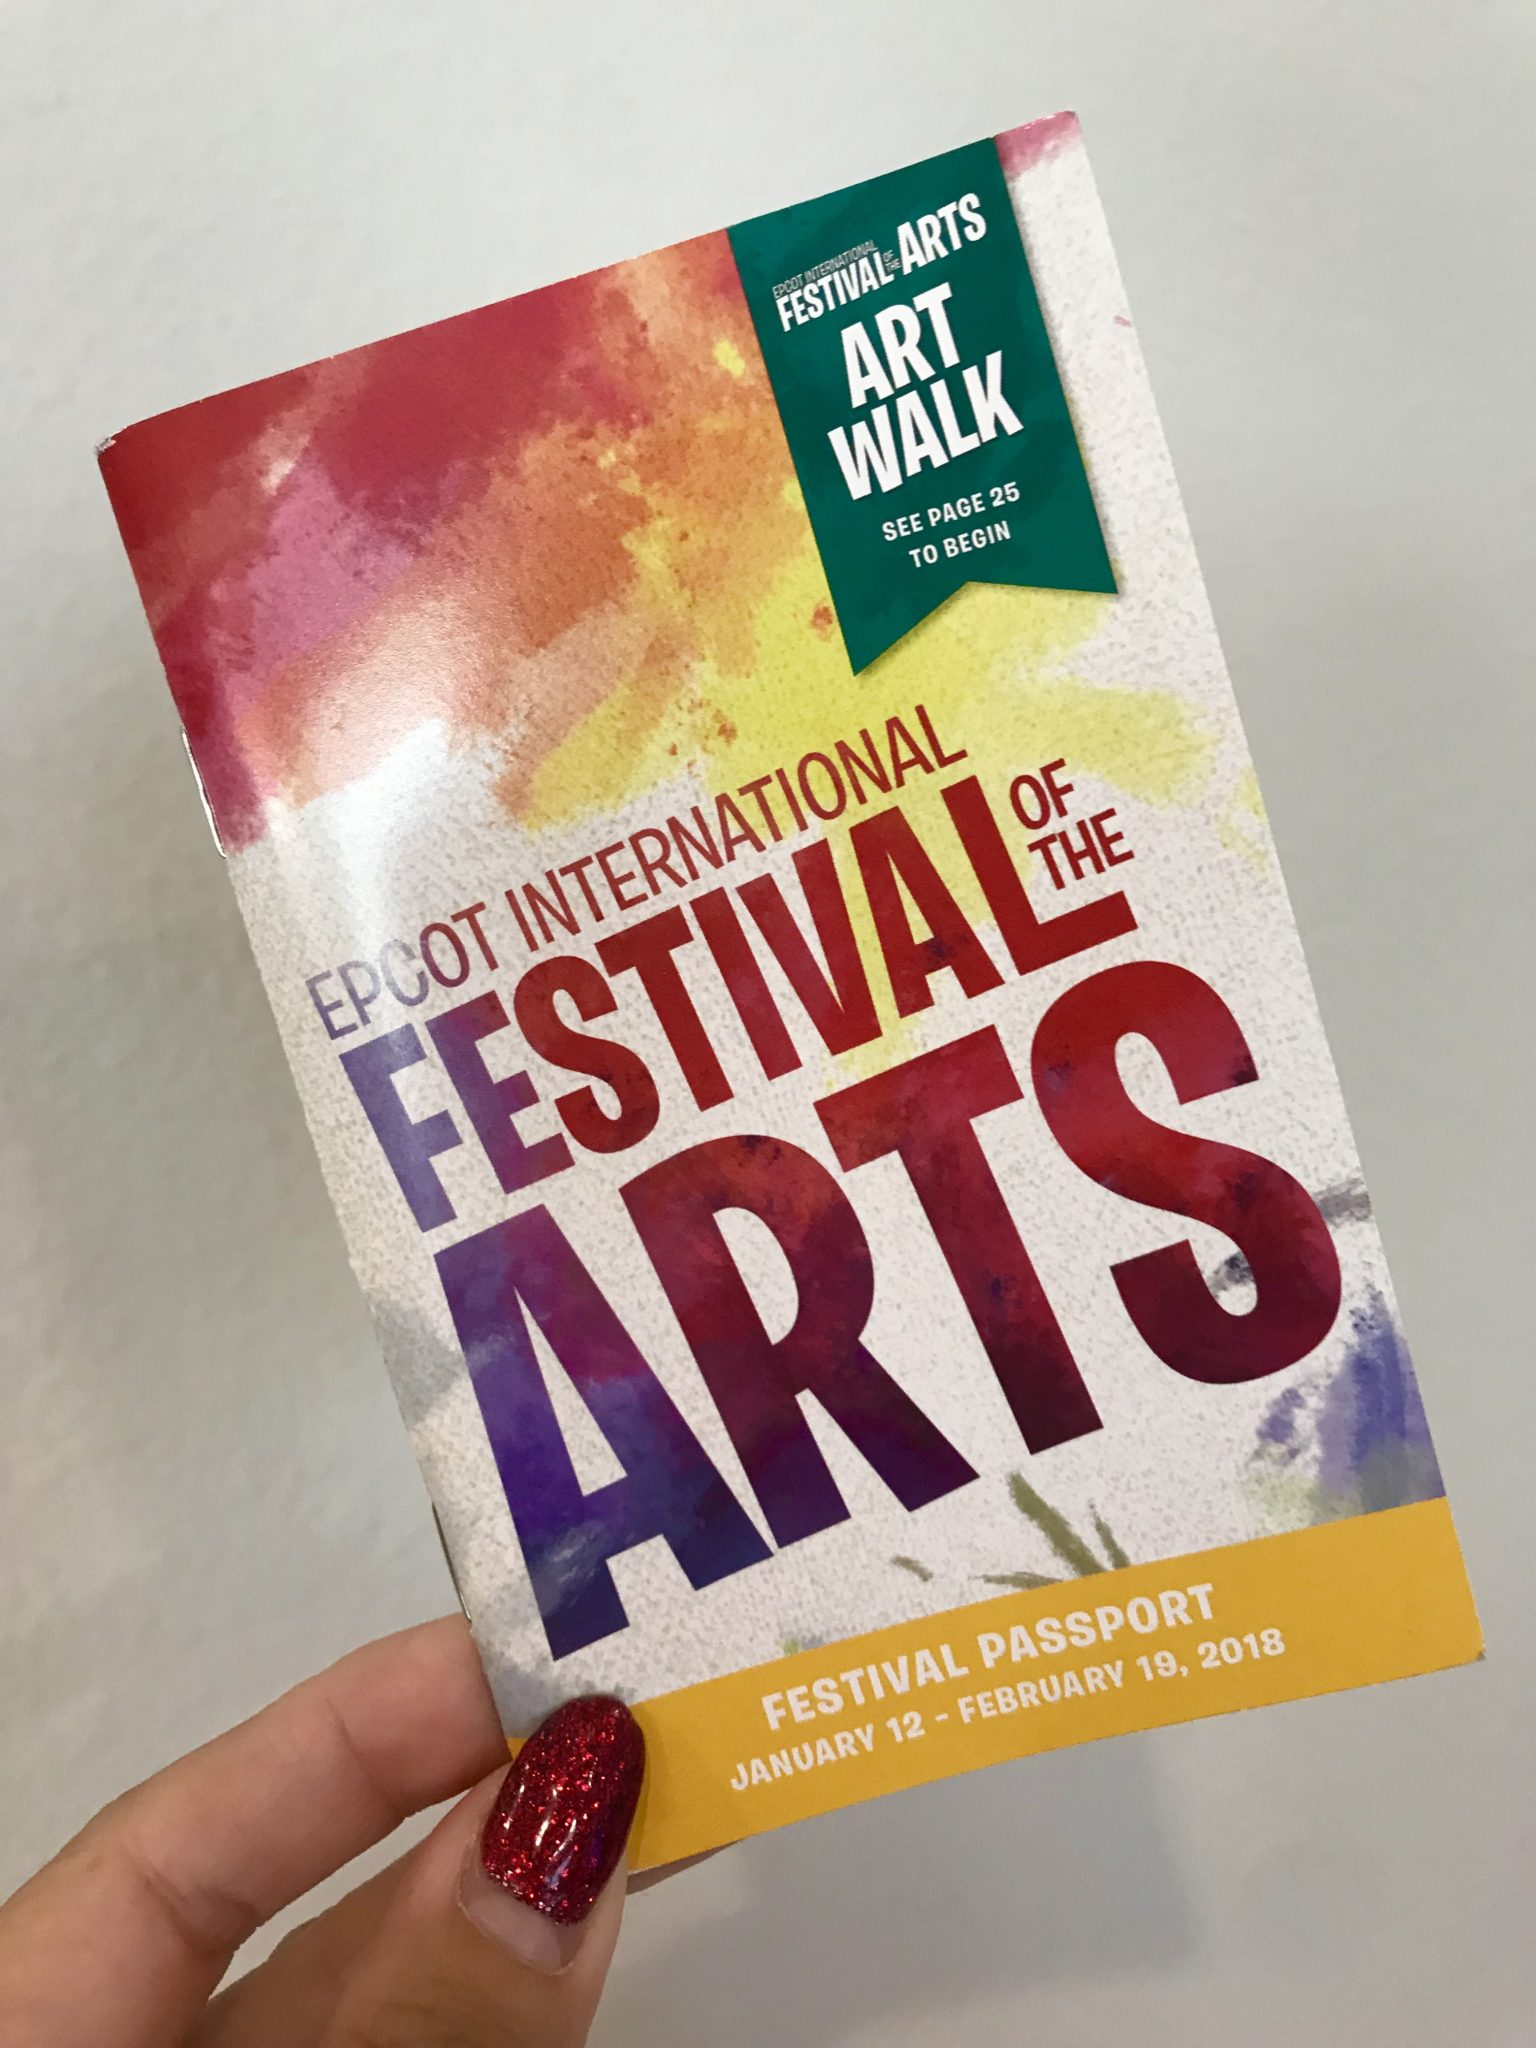 Epcot International Festival of the Arts Festival Passport